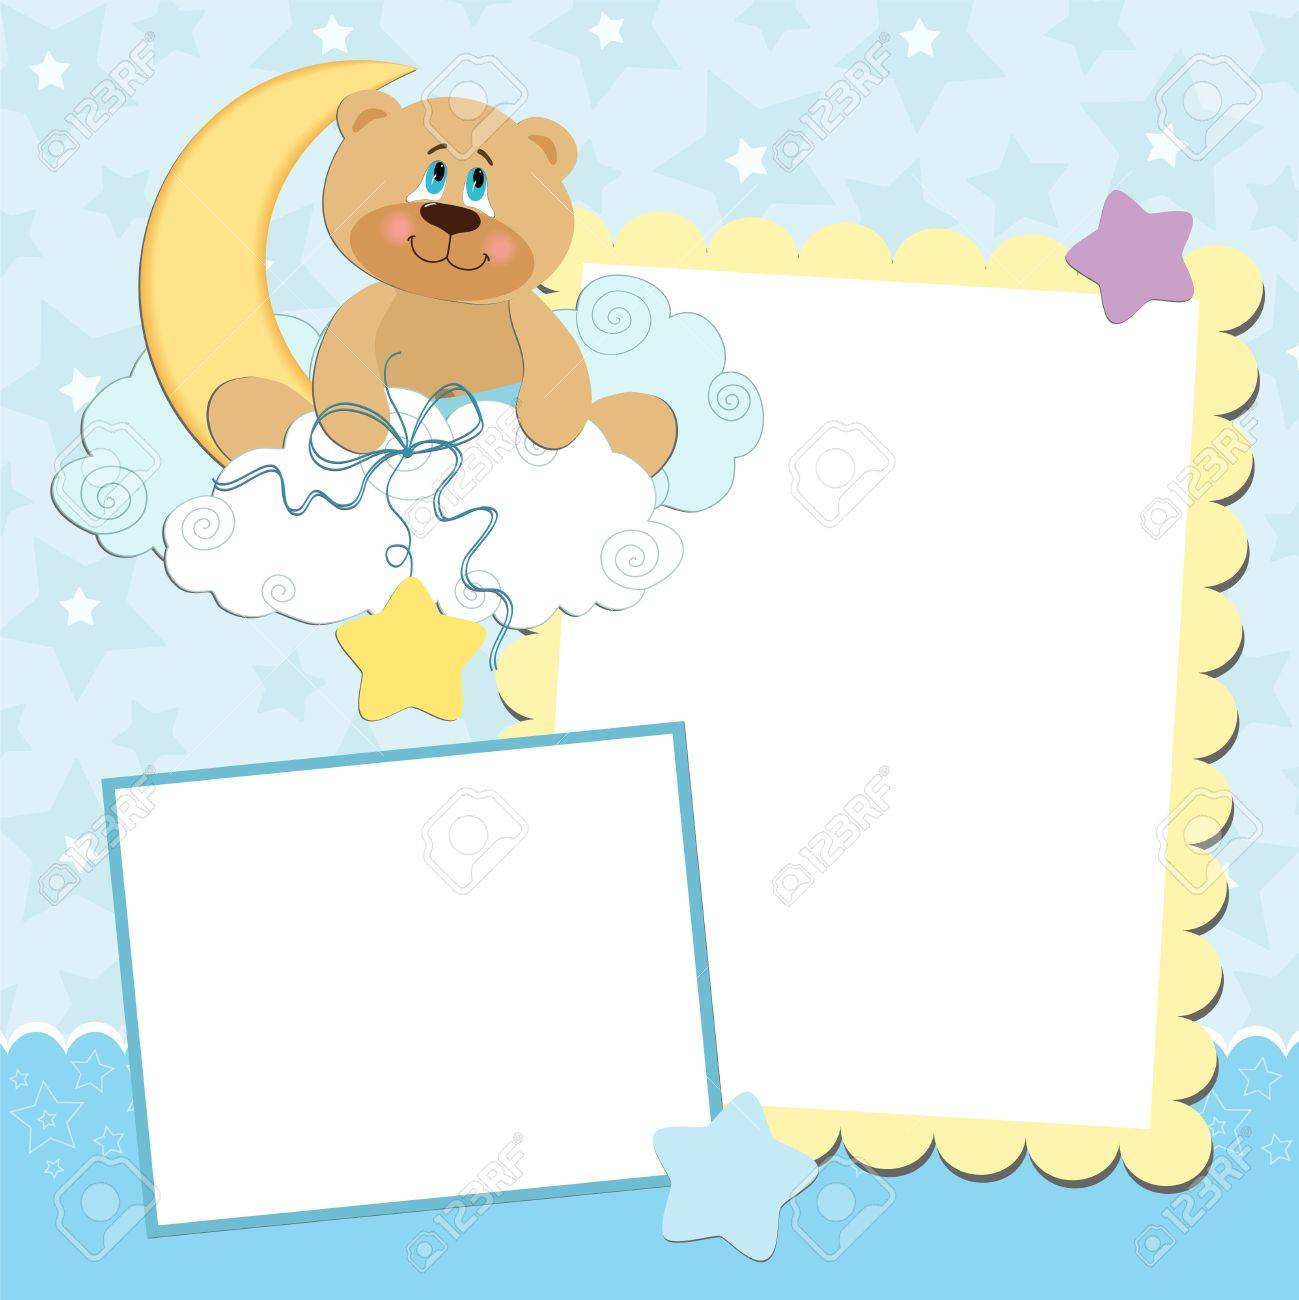 Blank Template For Greetings Card Or Photo Frame In Blue Colors – Free Blank Greeting Card Templates